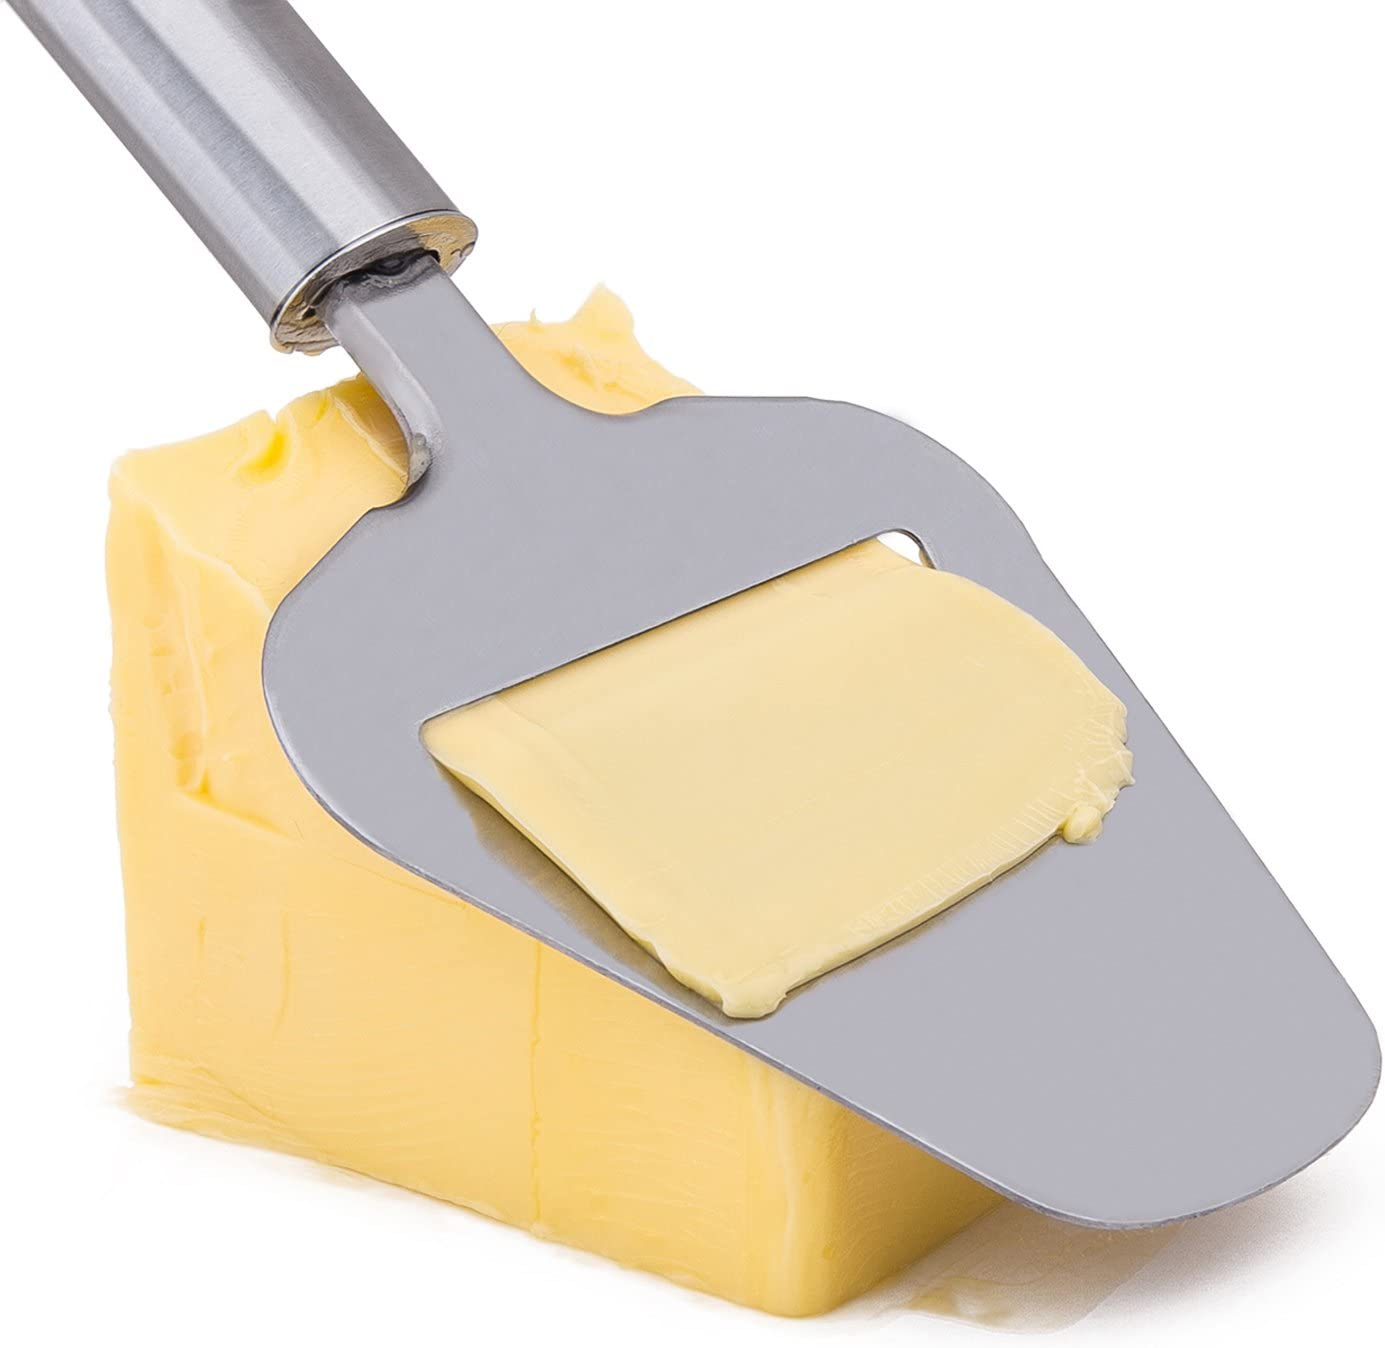 Best Cheese Slicers For Home (2021): Top 10 Review 10